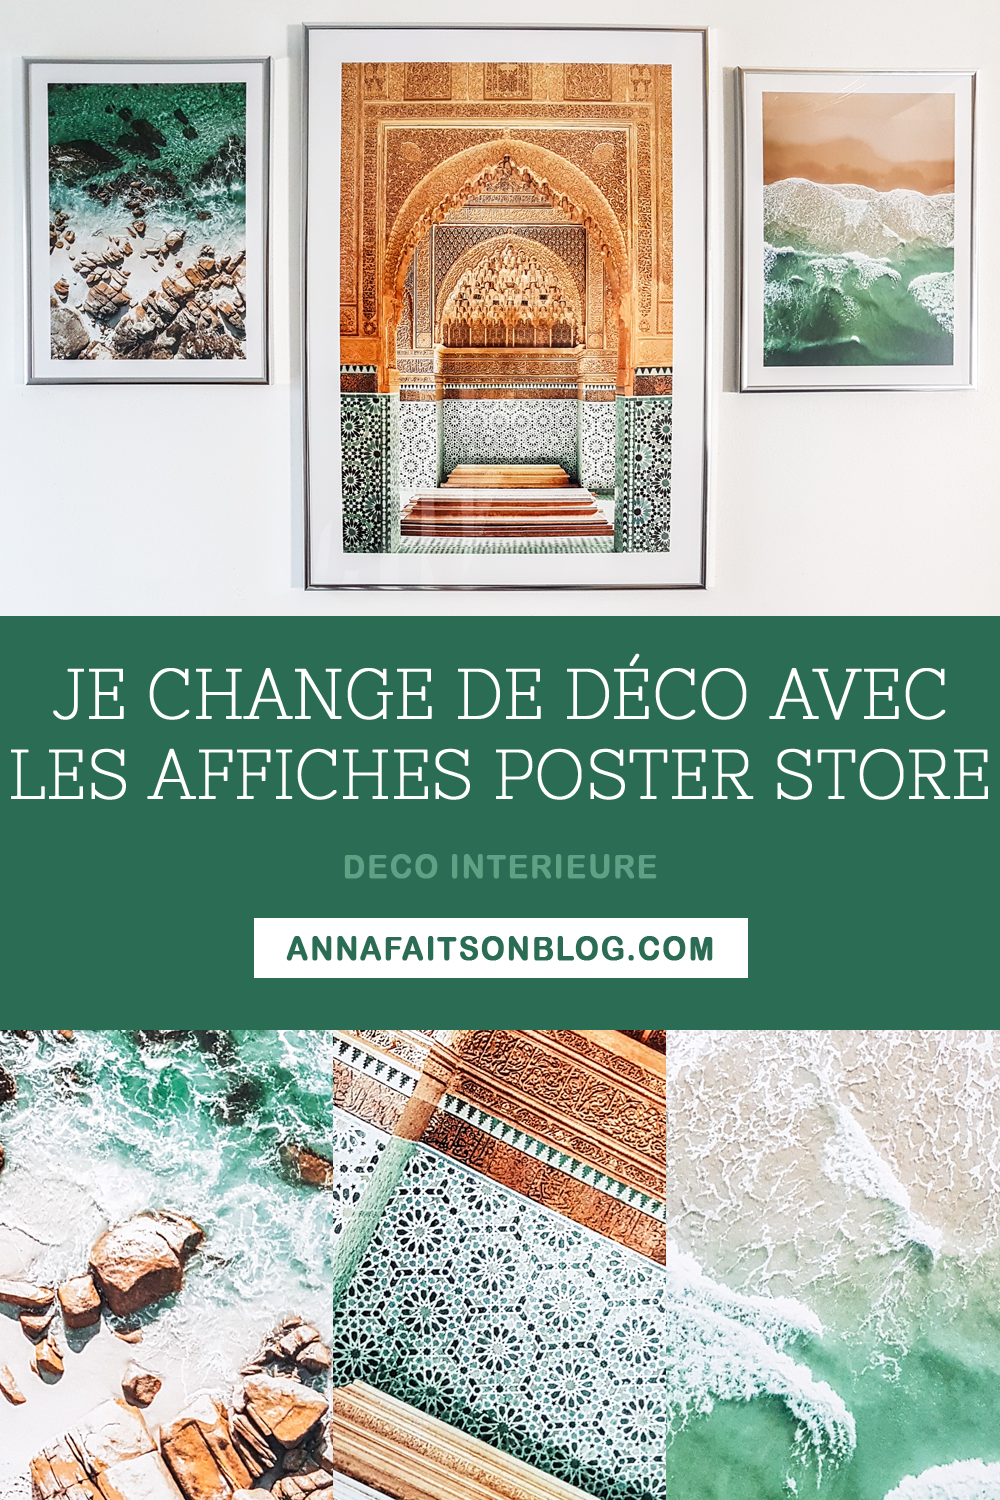 Affiches Poster Store #decoration #posters